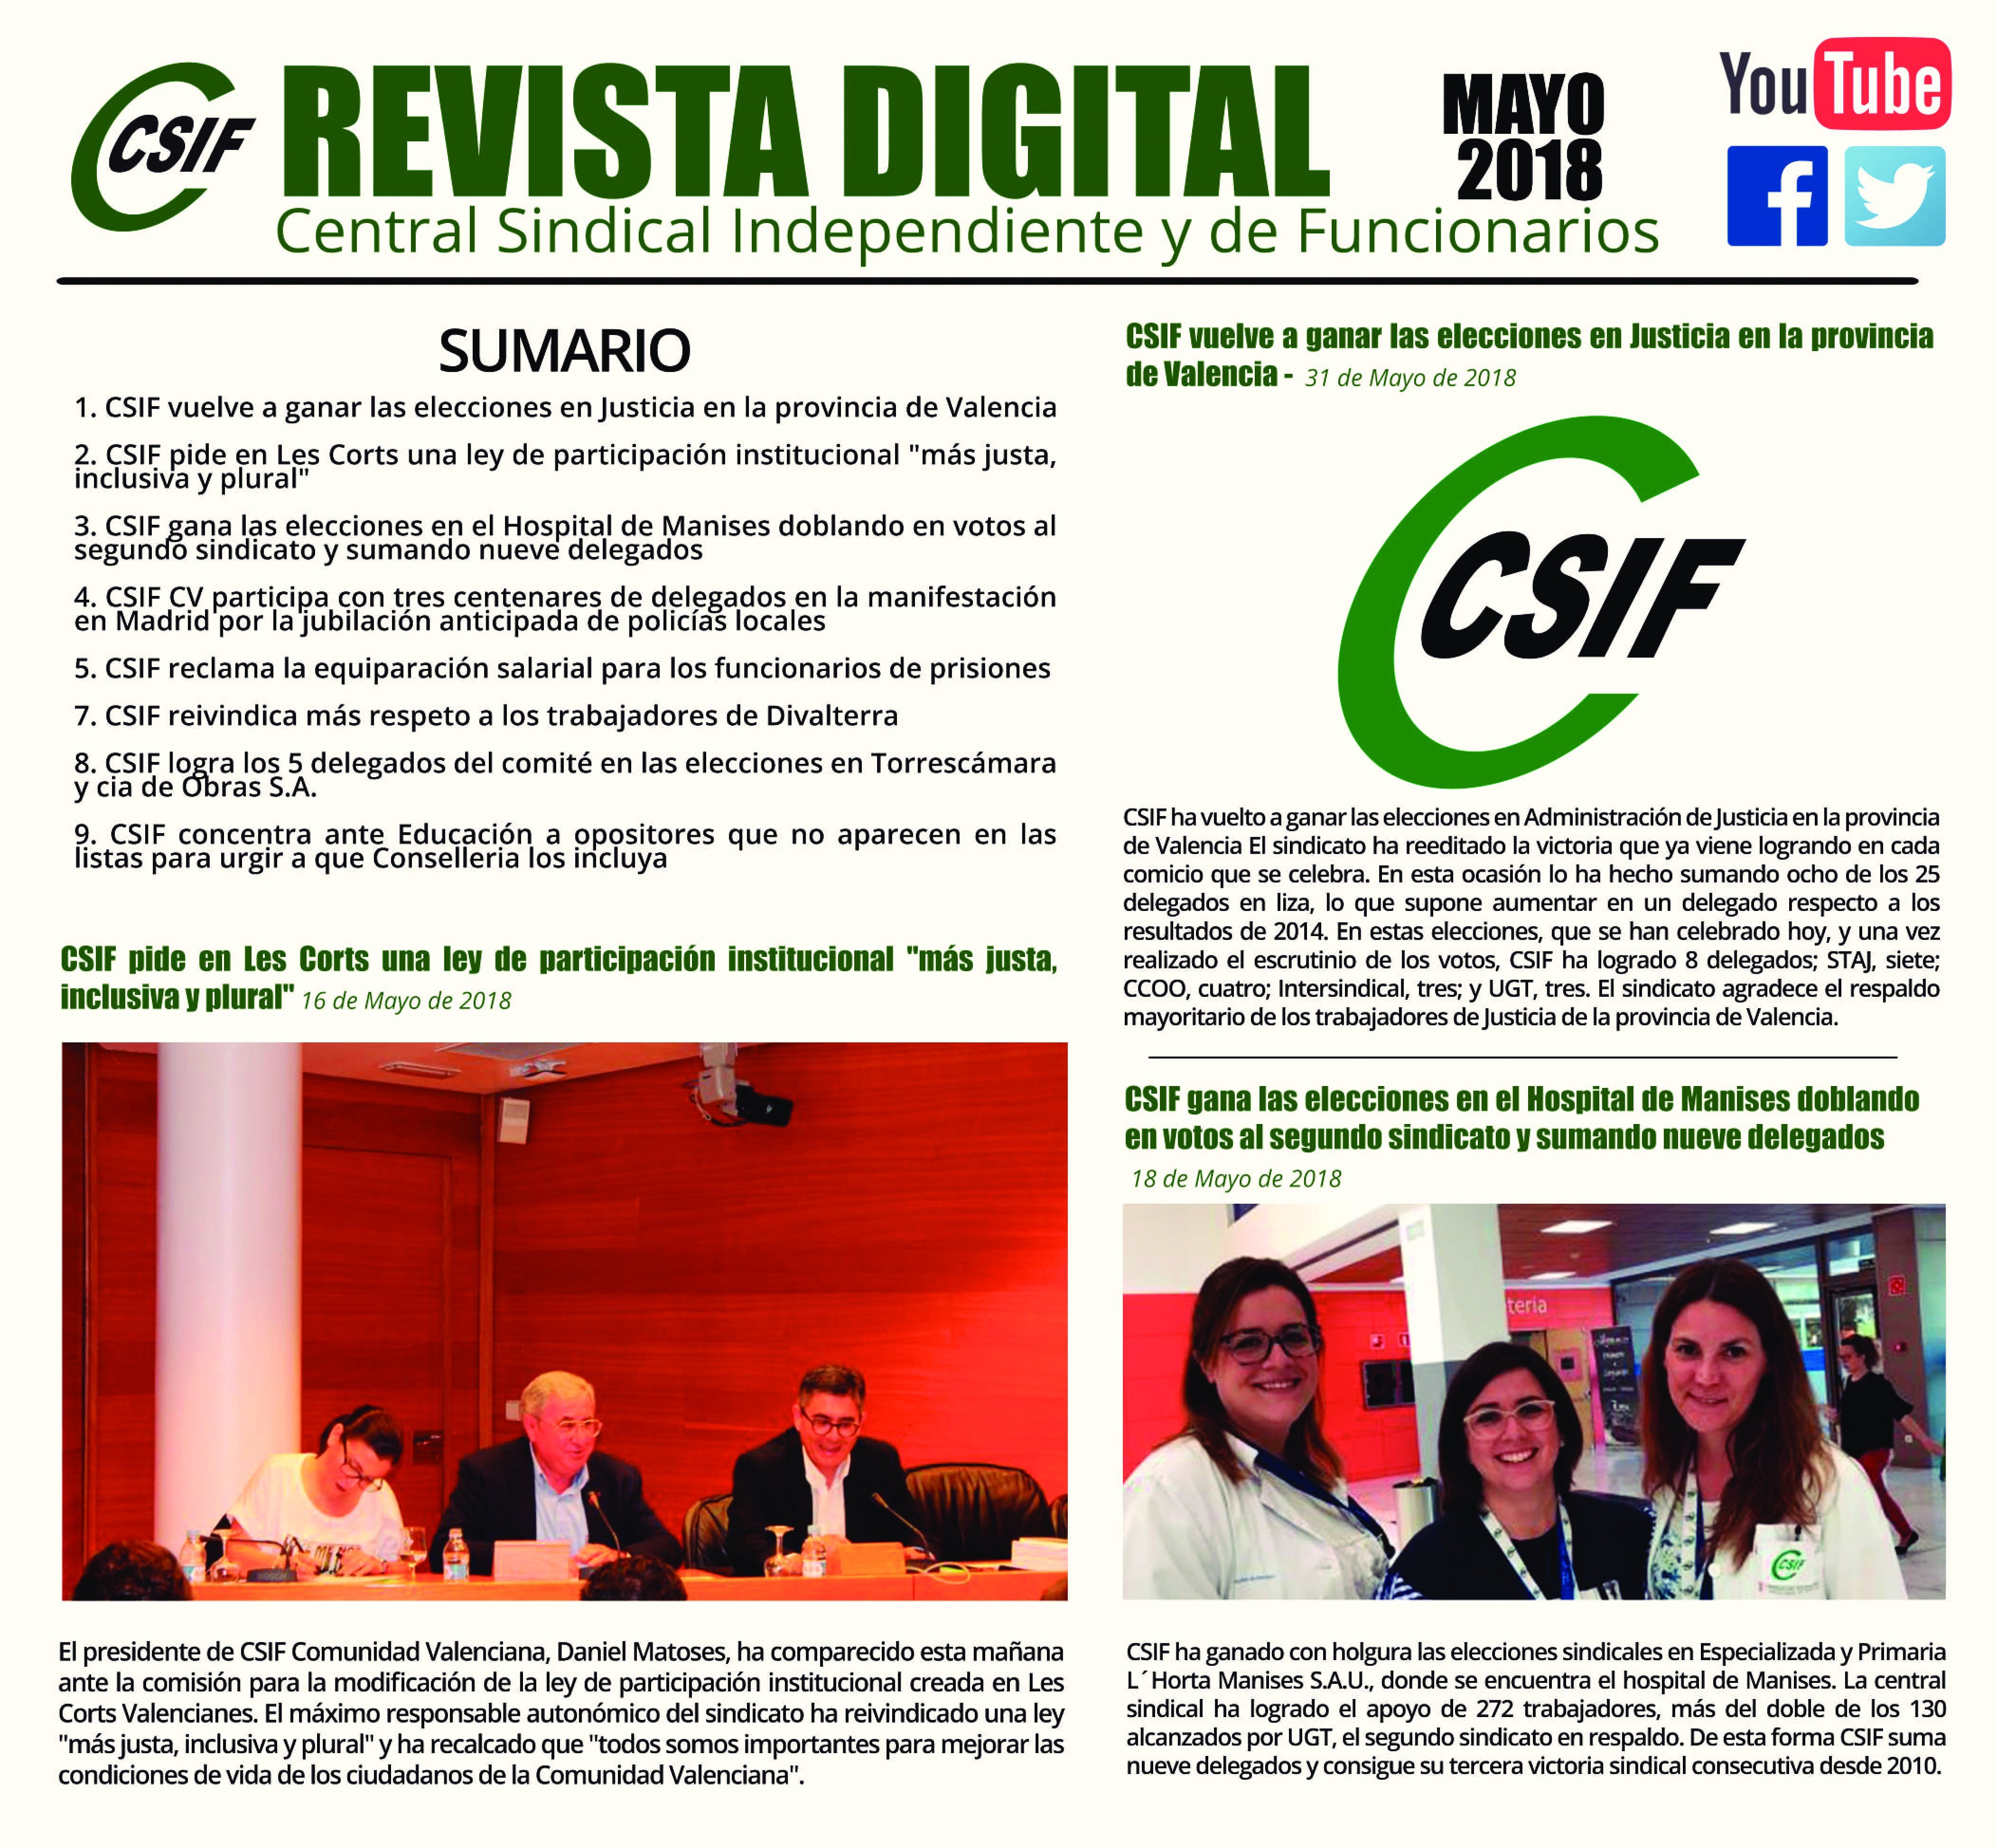 https://www.csif.es/sites/default/files/field/file/Revista-digital-2018-MAYO.pdf